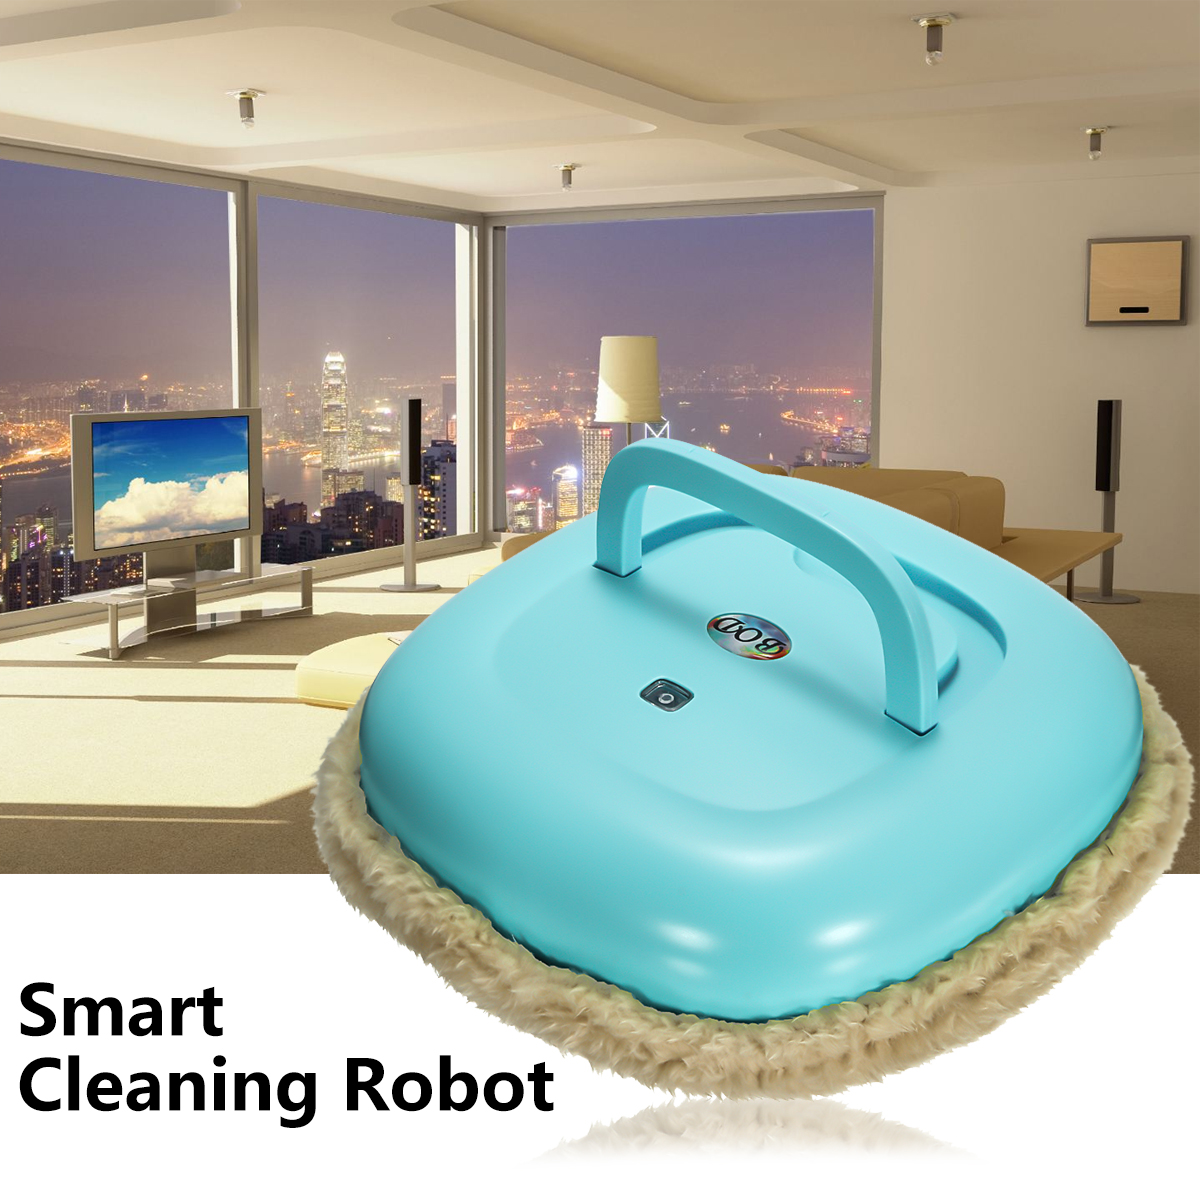 Ultra Thin Mopping Robot Auto Vacuum Cleaner Household Dry or Wet Cleaning Robots Low Noise Suitable for Office Living Room